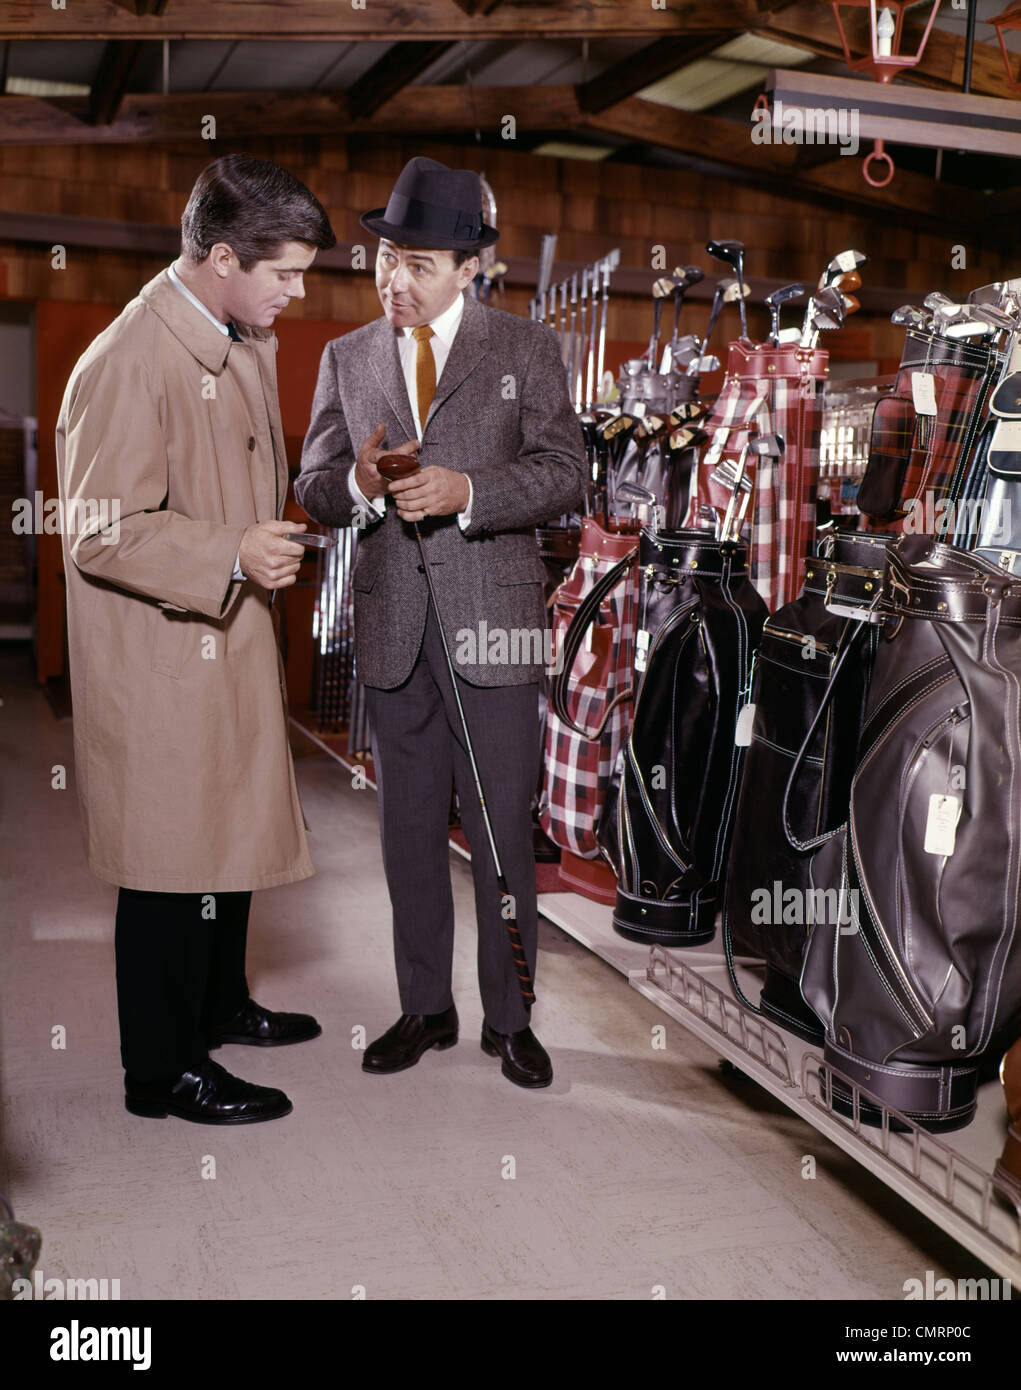 TWO MEN IN GOLF EQUIPMENT SHOP TALKING AND DISCUSSING PURCHASE OF A DRIVER GOLF CLUB - Stock Image